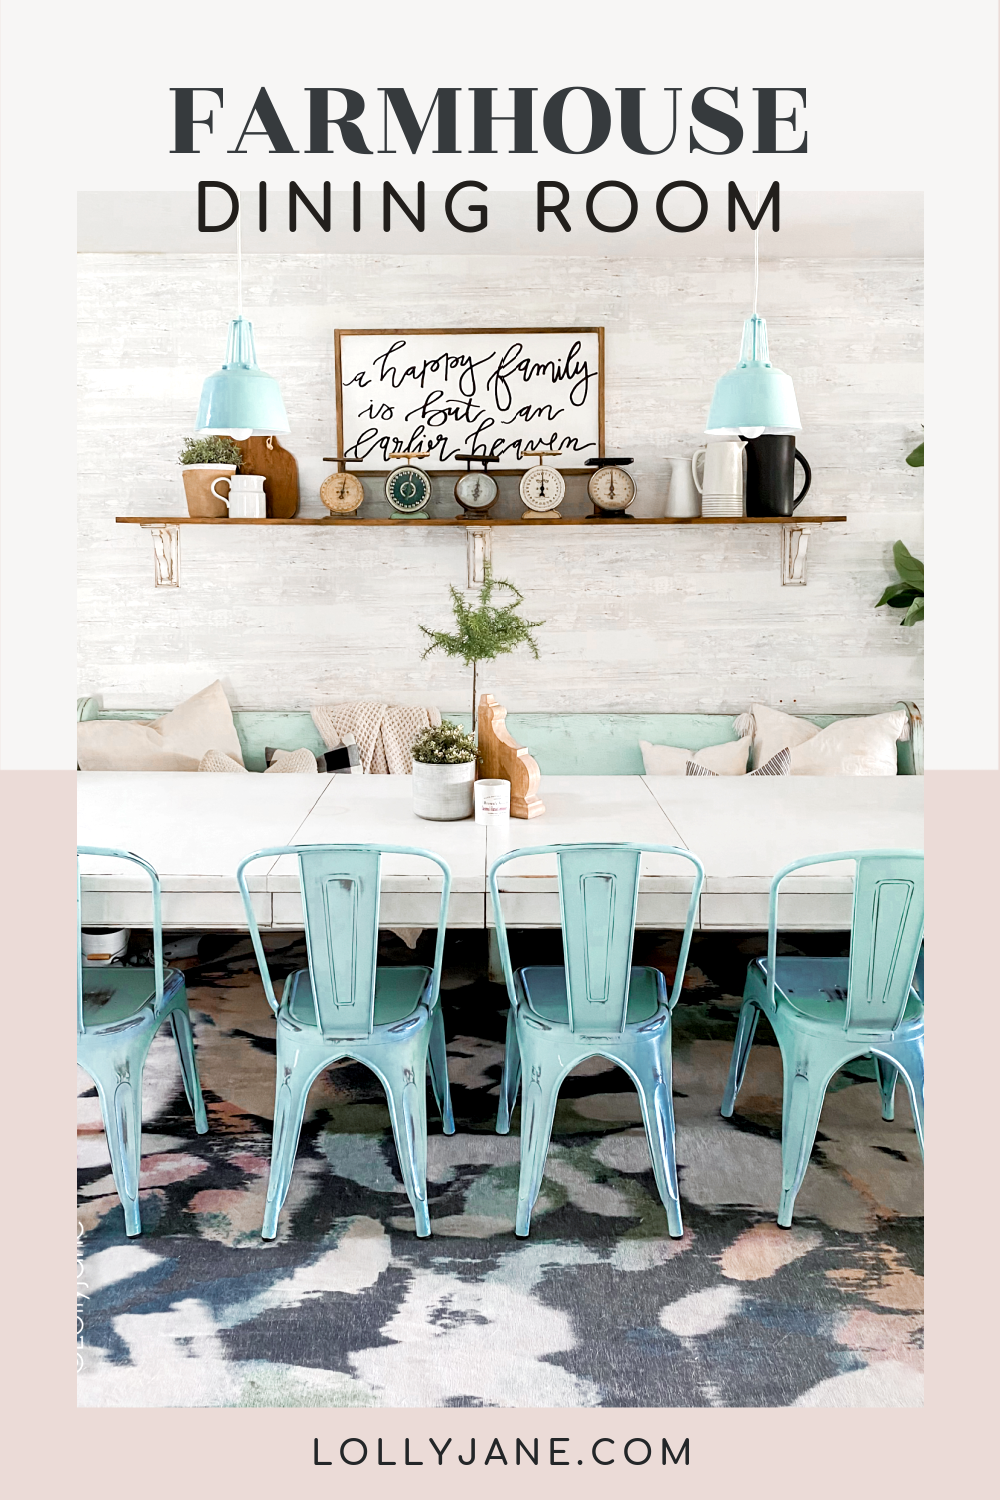 Farmhouse style dining room... love the splash of blue! DIY Wallpaper + Painted table + DIY shelves... making your own dining room farmhouse style doesn't need to break the bank! #diningroom #farmhouse #farmhousediningroom #farmhousedecor #wallpaper #diyshelves